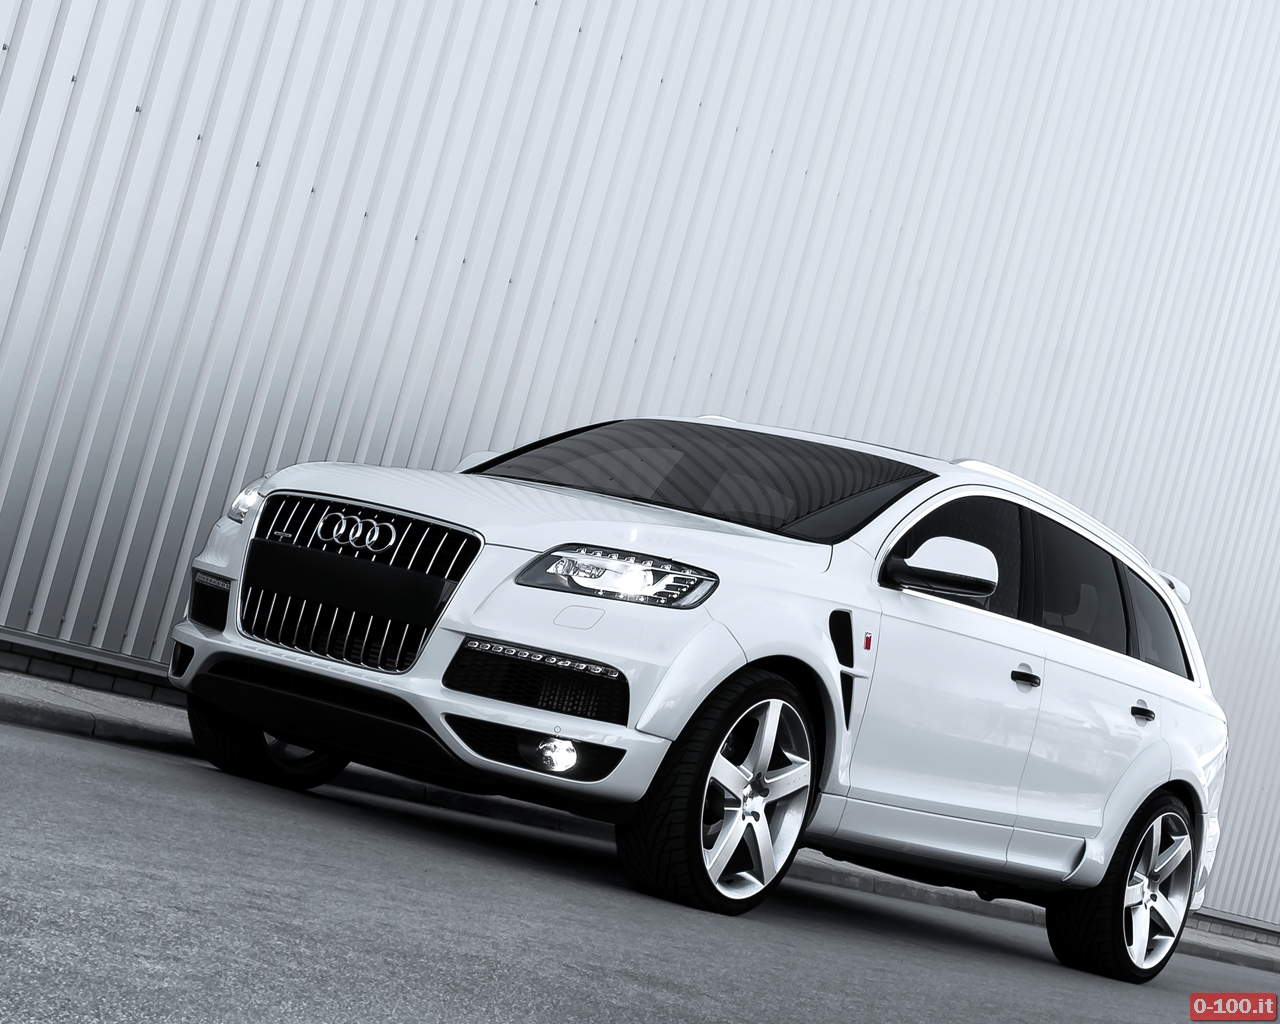 audi-q7-by-khan-design_0-100_1